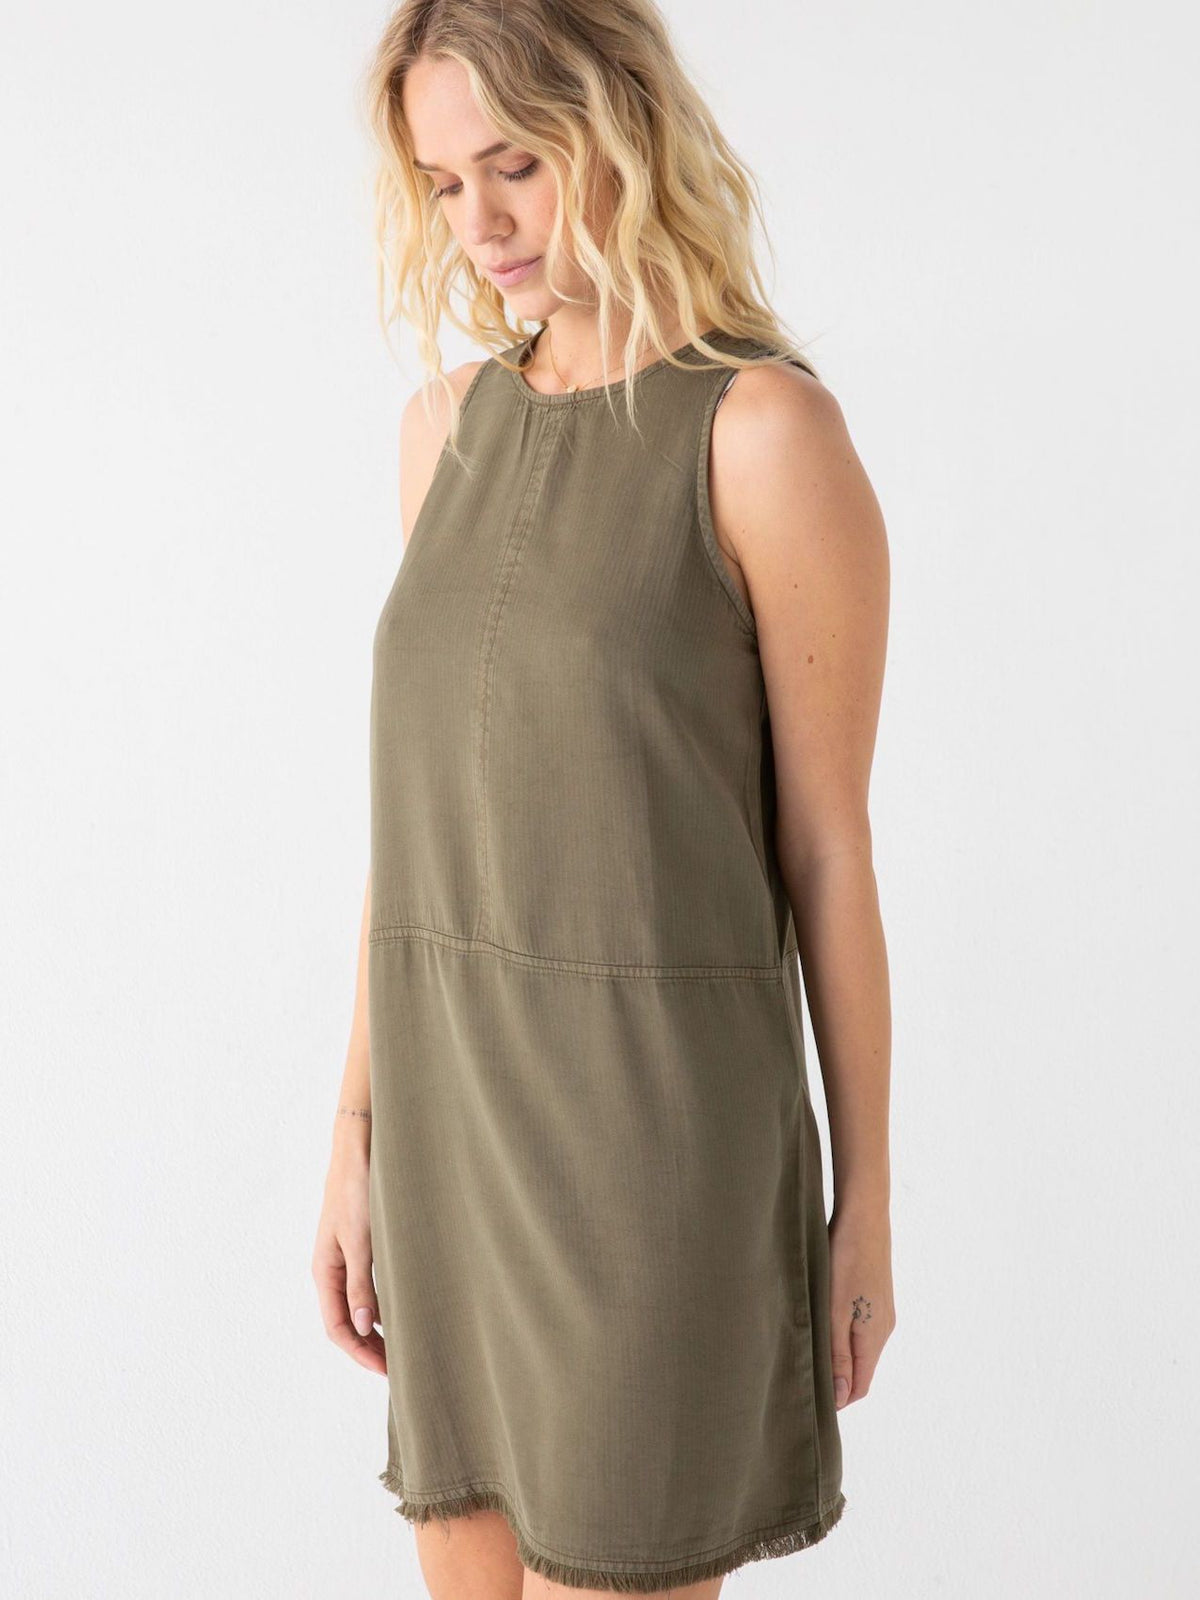 Feria Dress Thread & Supply Olive S